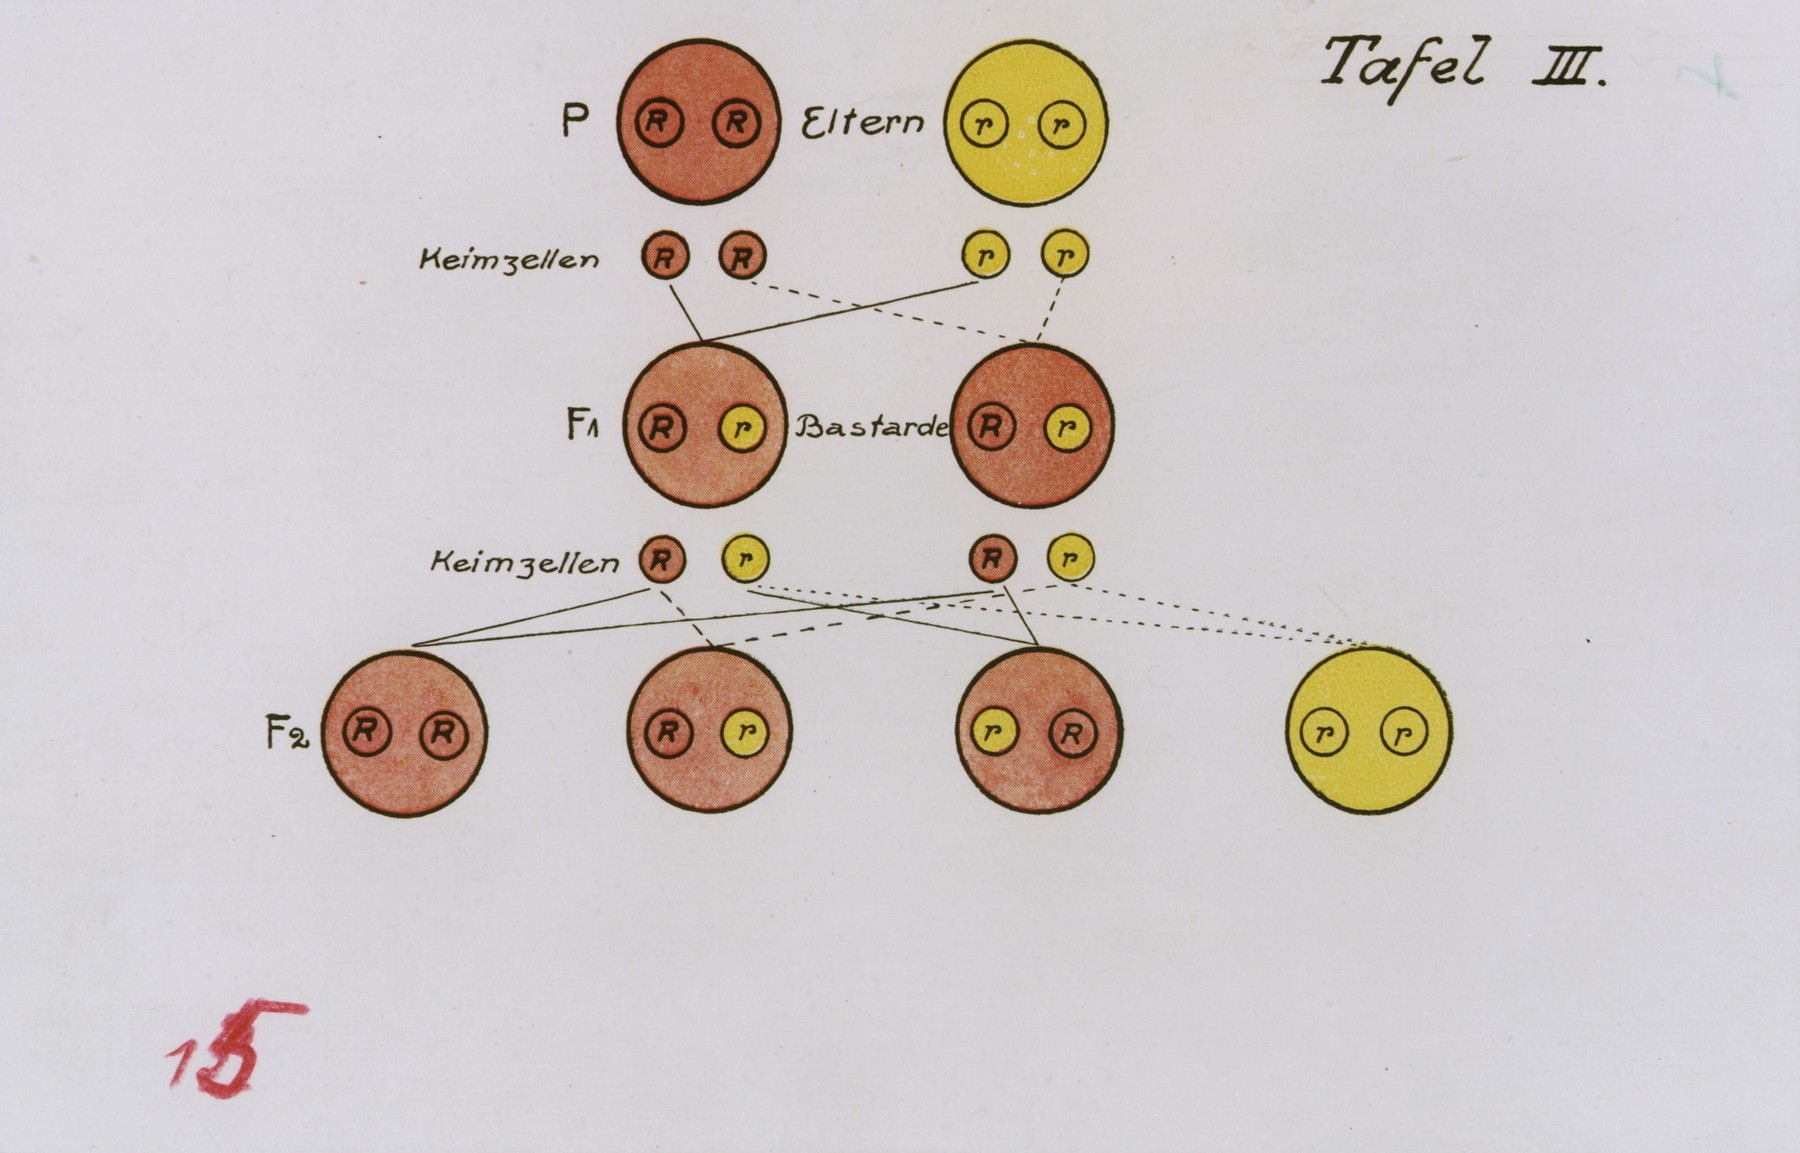 Chart illustrating the transmission ancestral genetic traits.